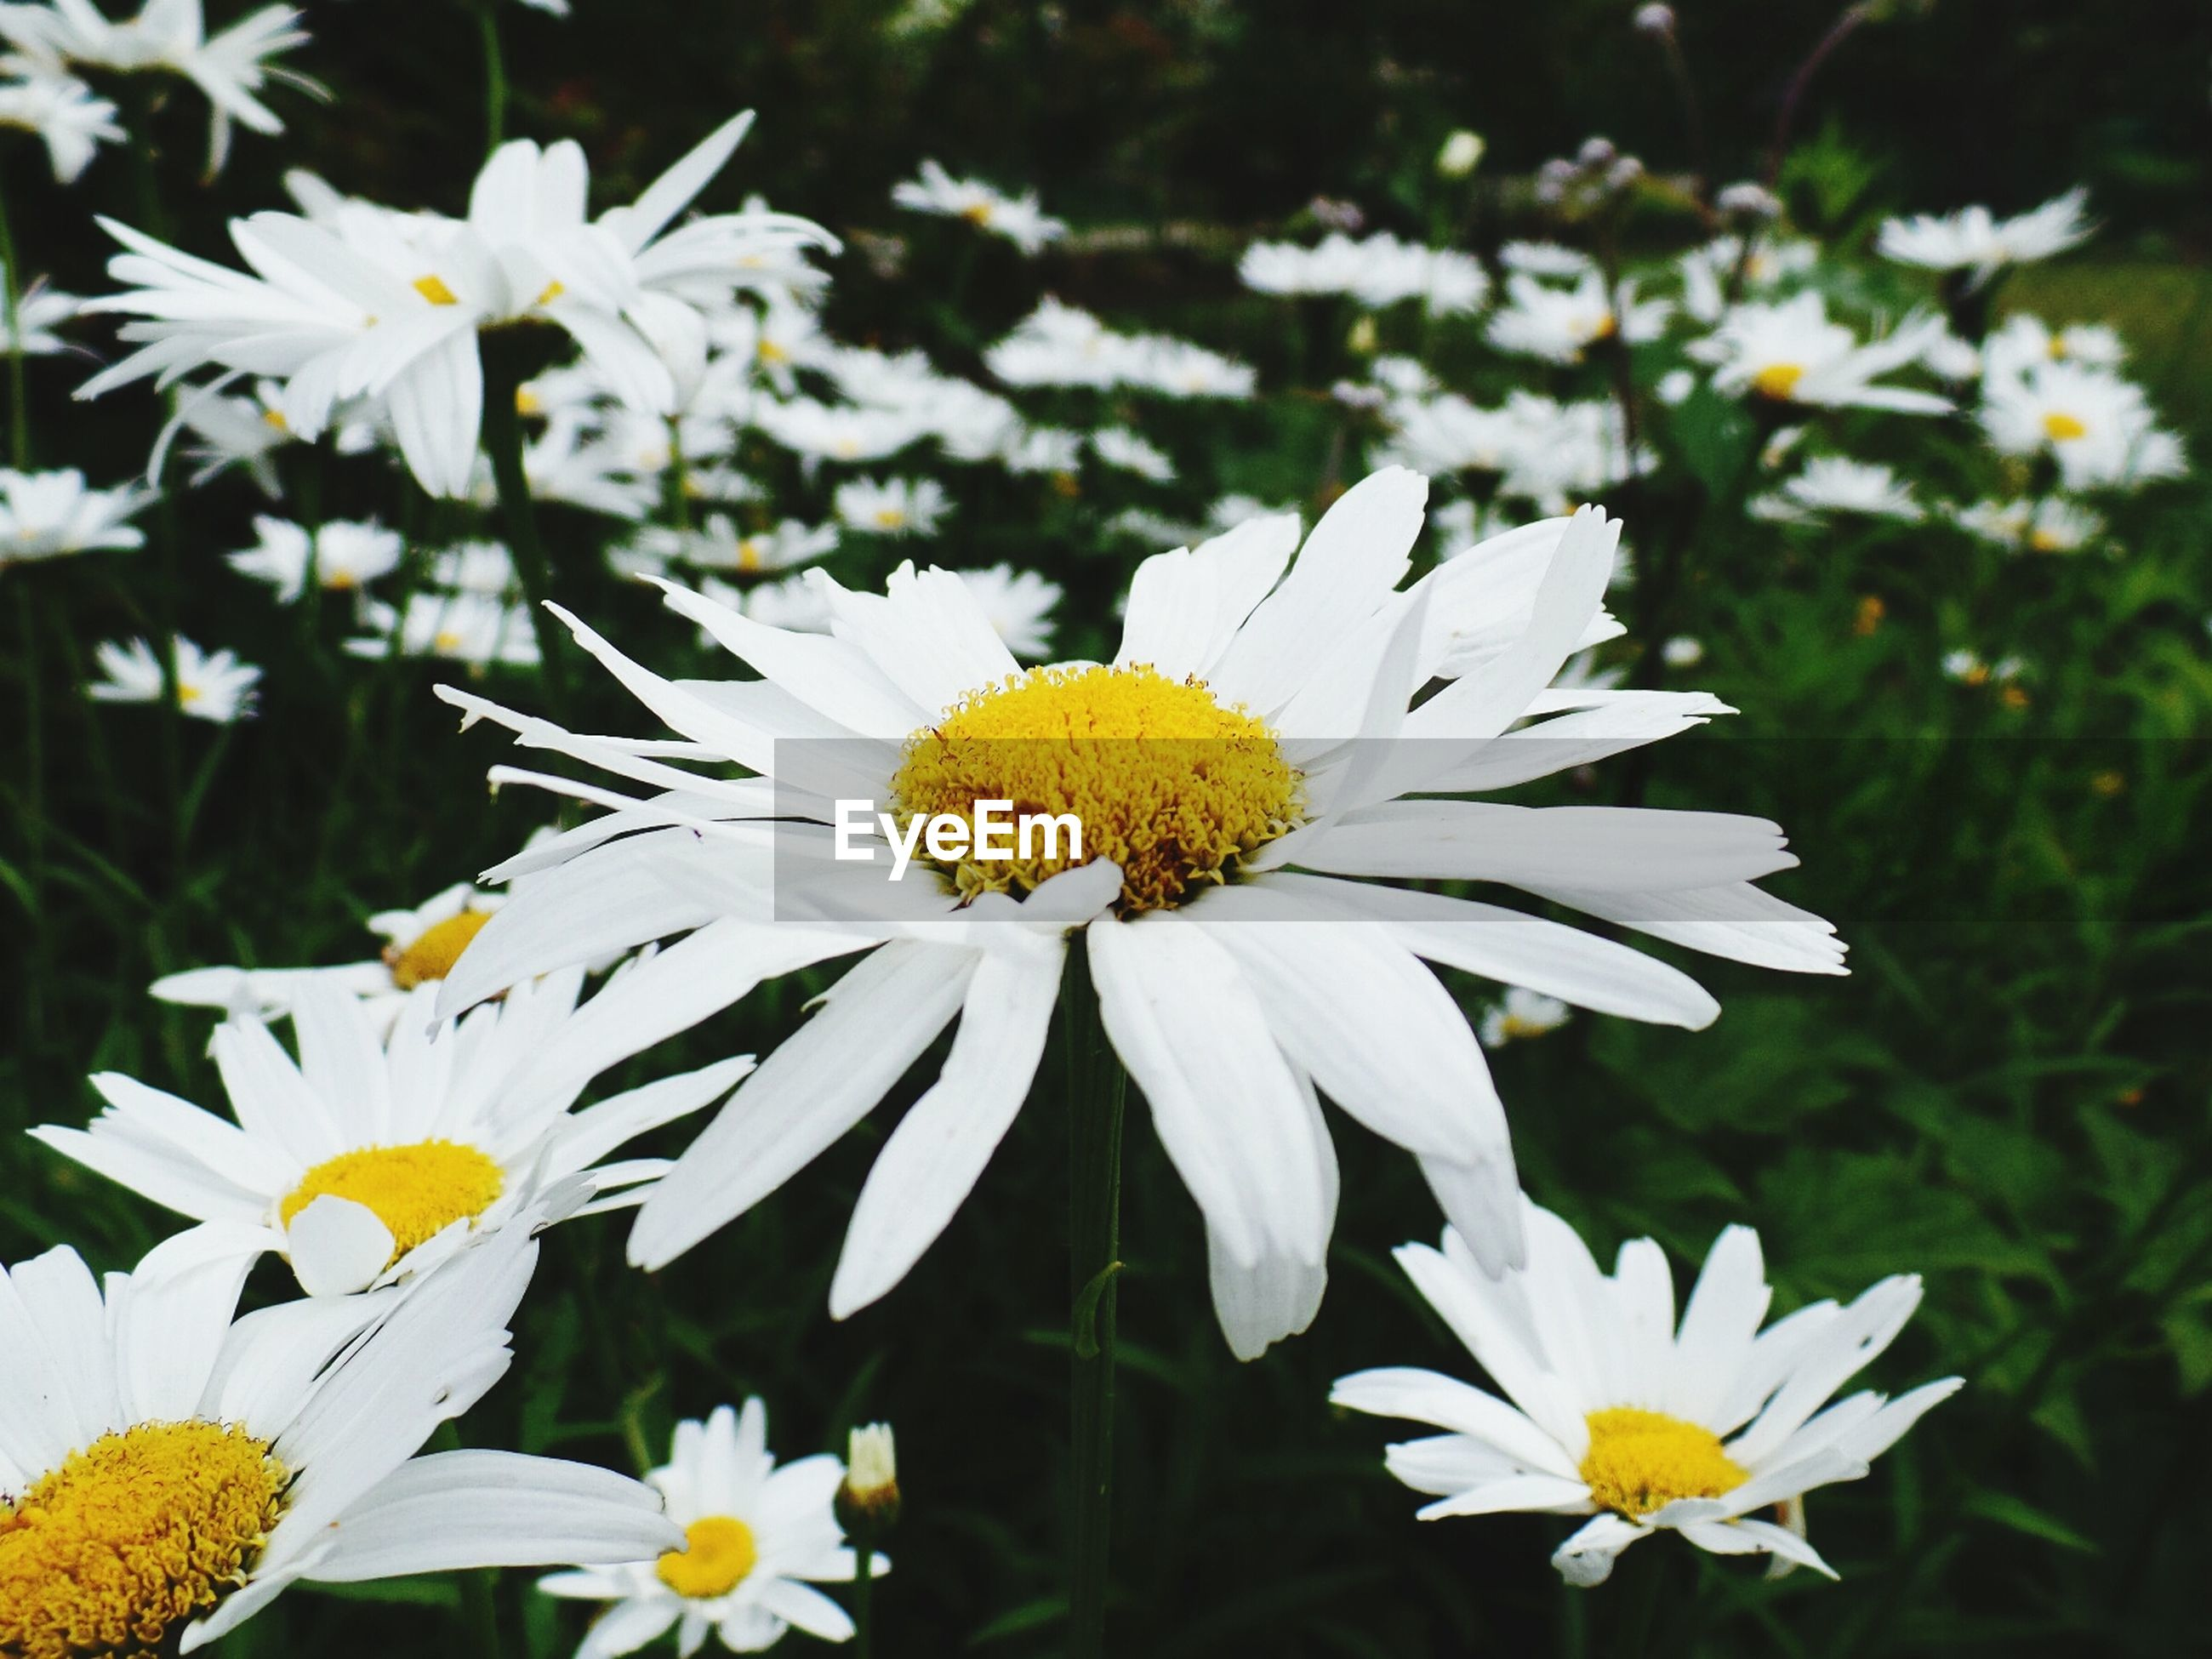 Daisies blooming on field in park